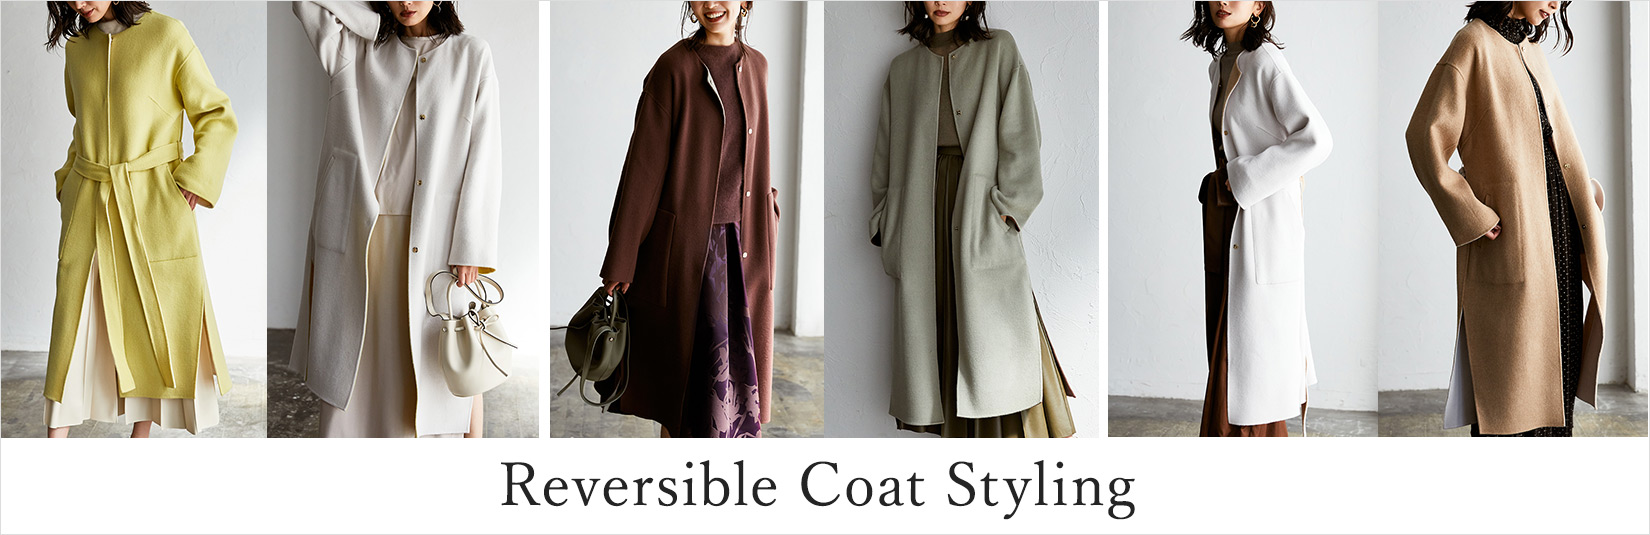 Reversible Coat Styling